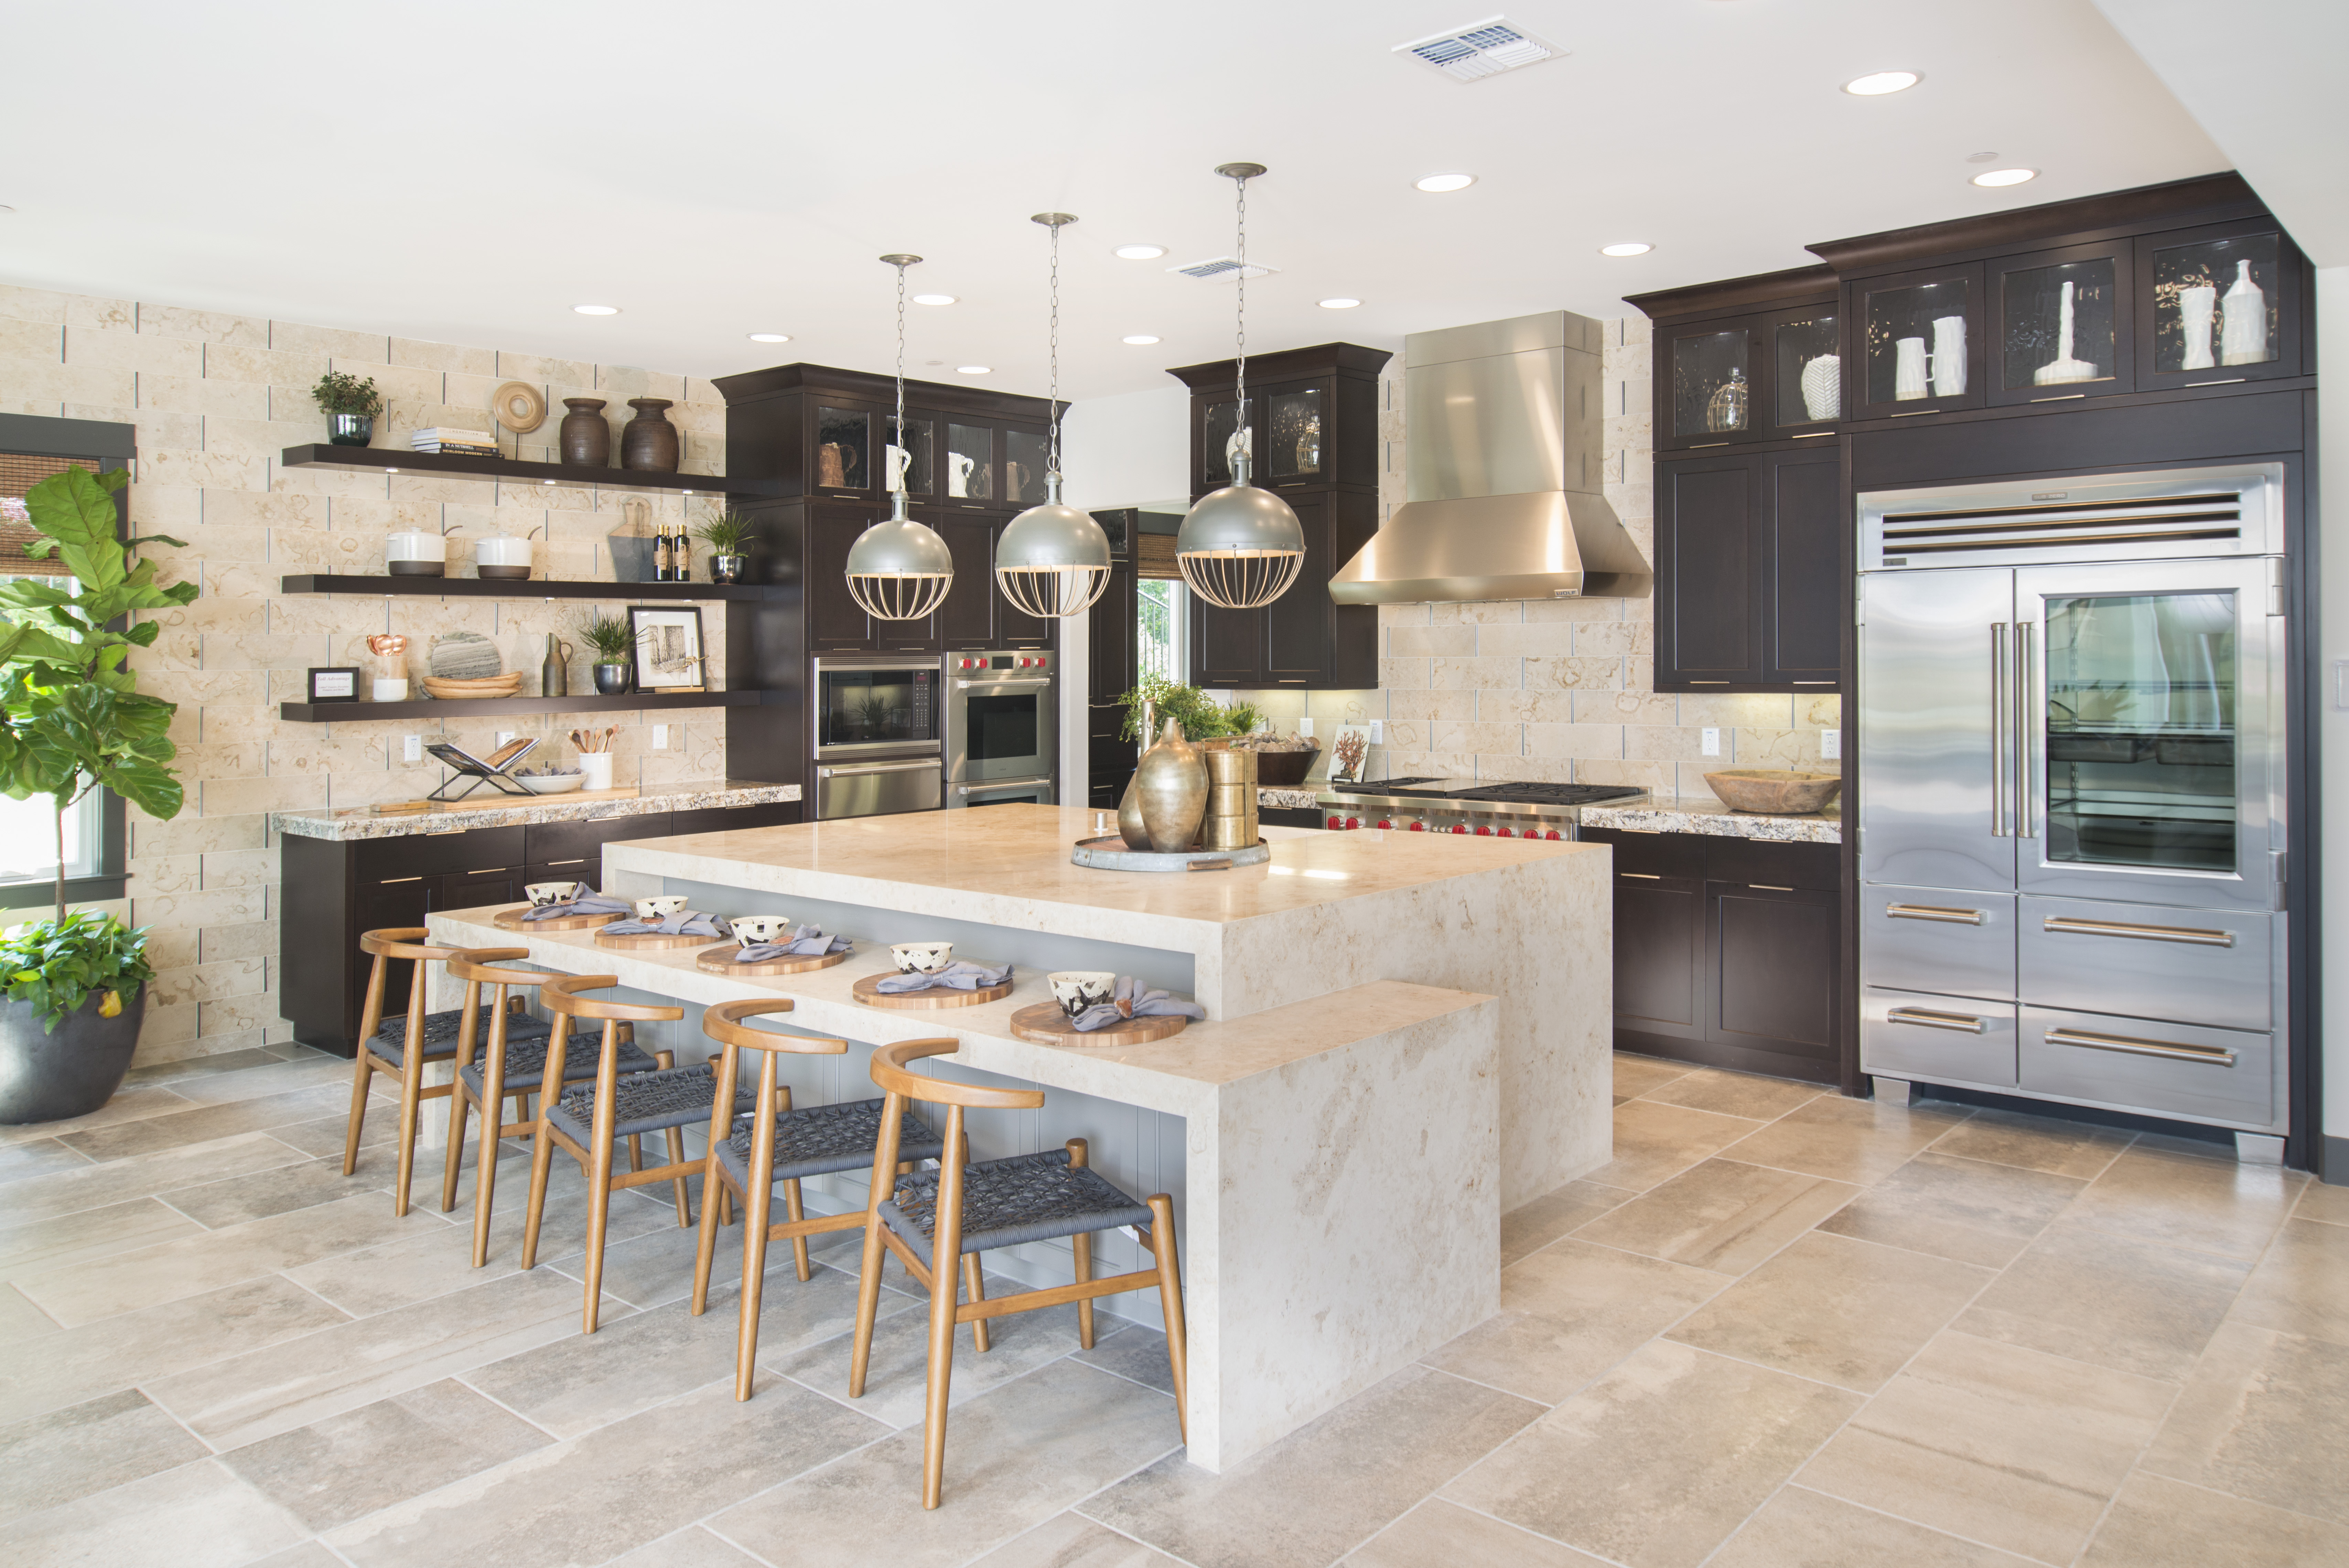 Maple Transitional Kitchen, Shaker Style Finished in a Dark Espresso Stain with a Beautiful Painted Island and Stainless Steel Appliances